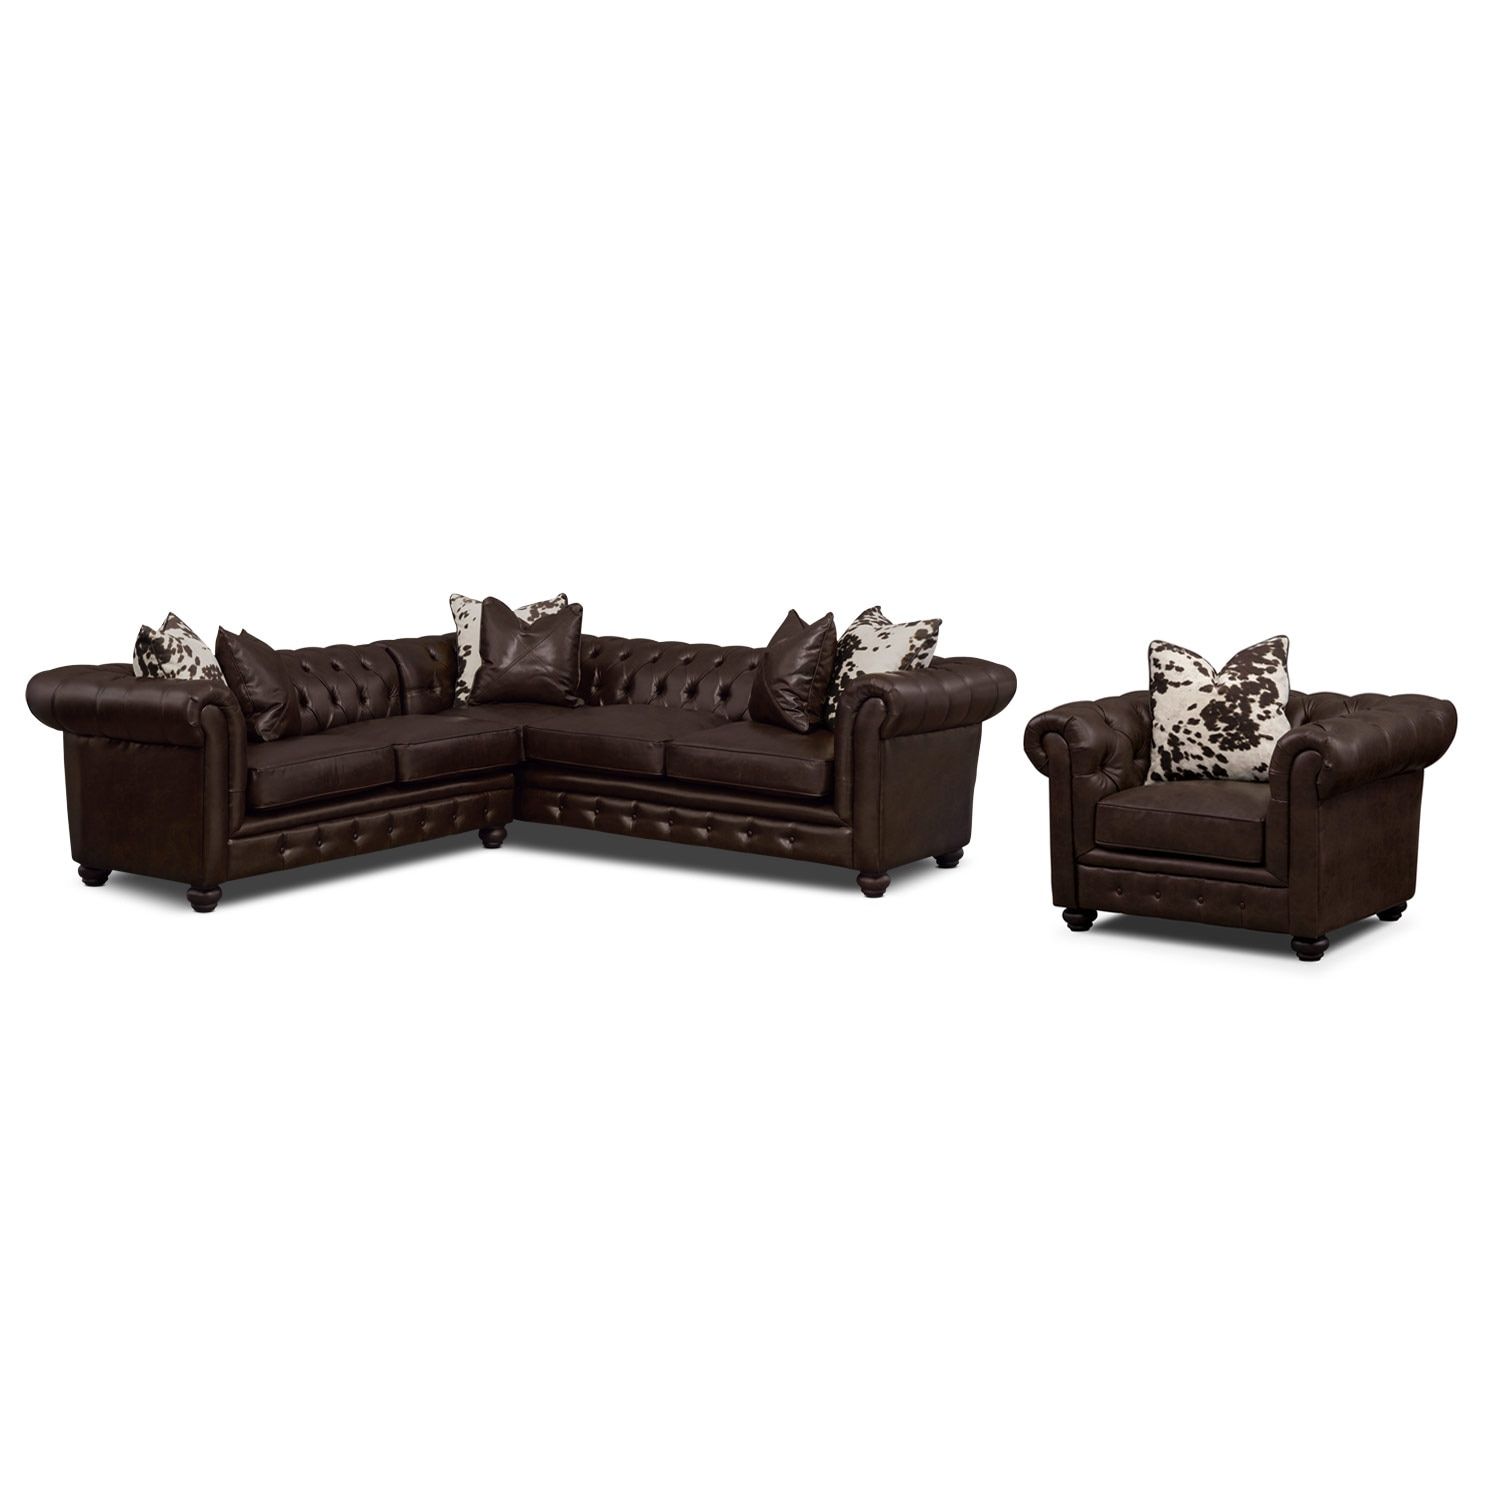 Living Room Furniture - Madeline Chocolate 2 Pc. Sectional and Chair